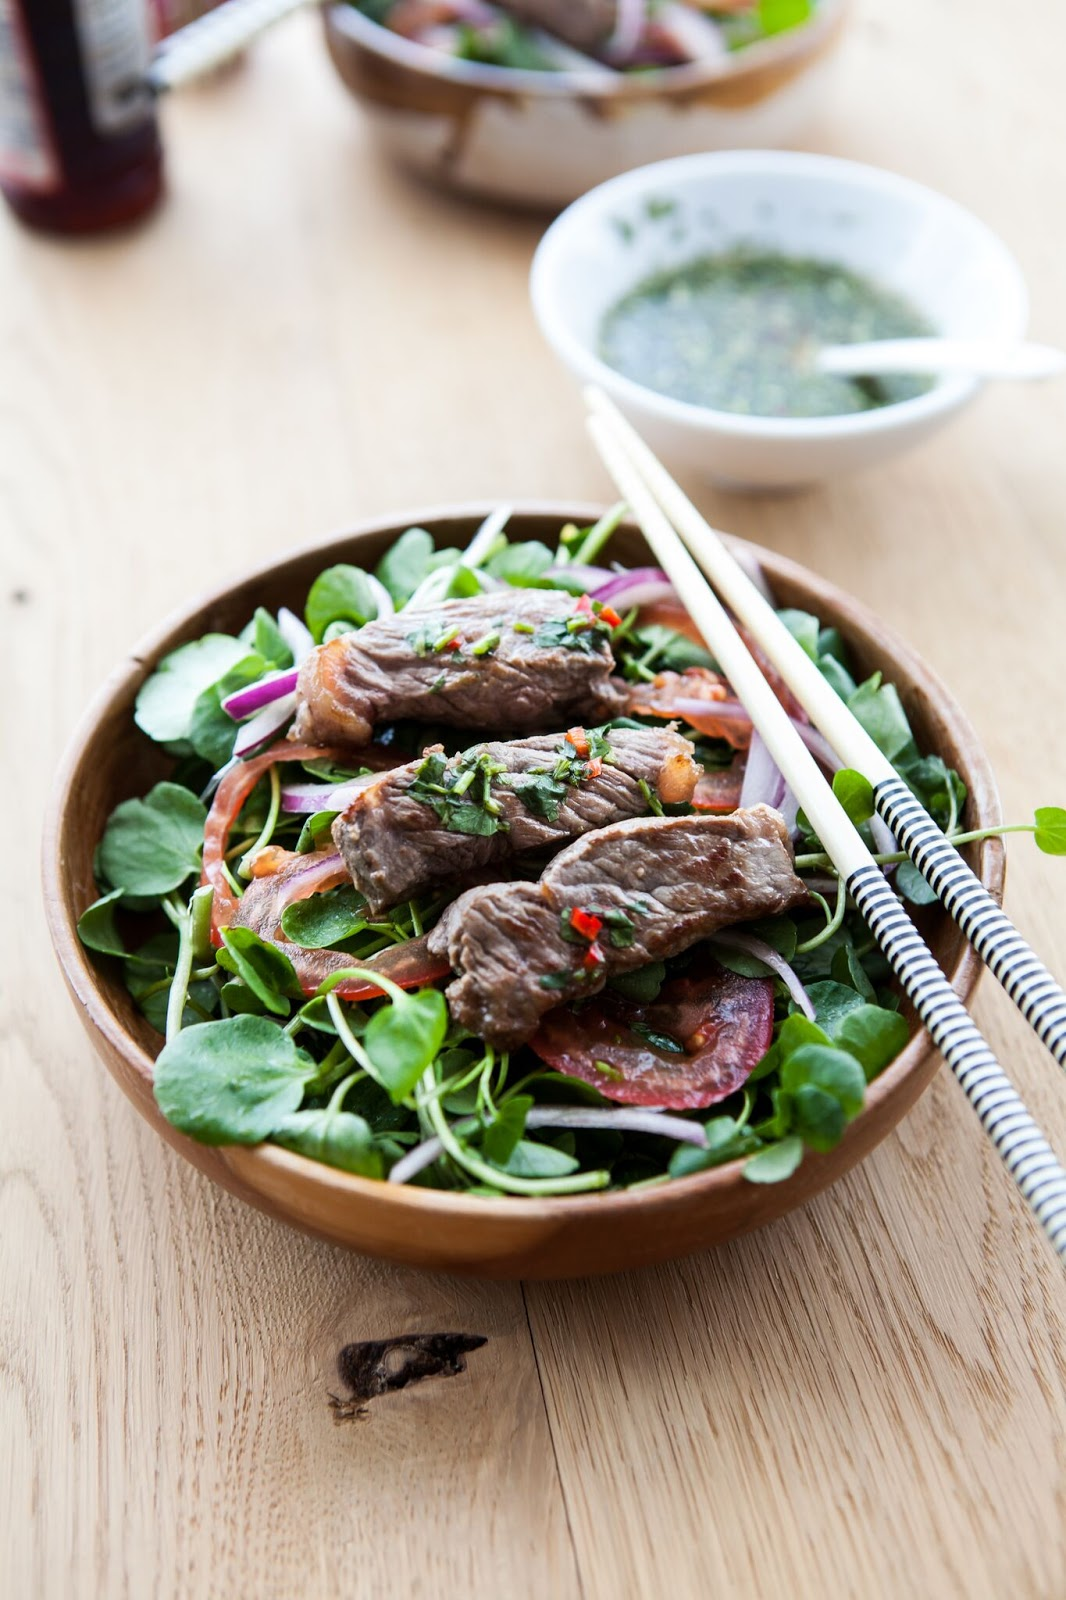 Asian-Style Warm Beef and Watercress Salad with Nuoc Cham Dressing